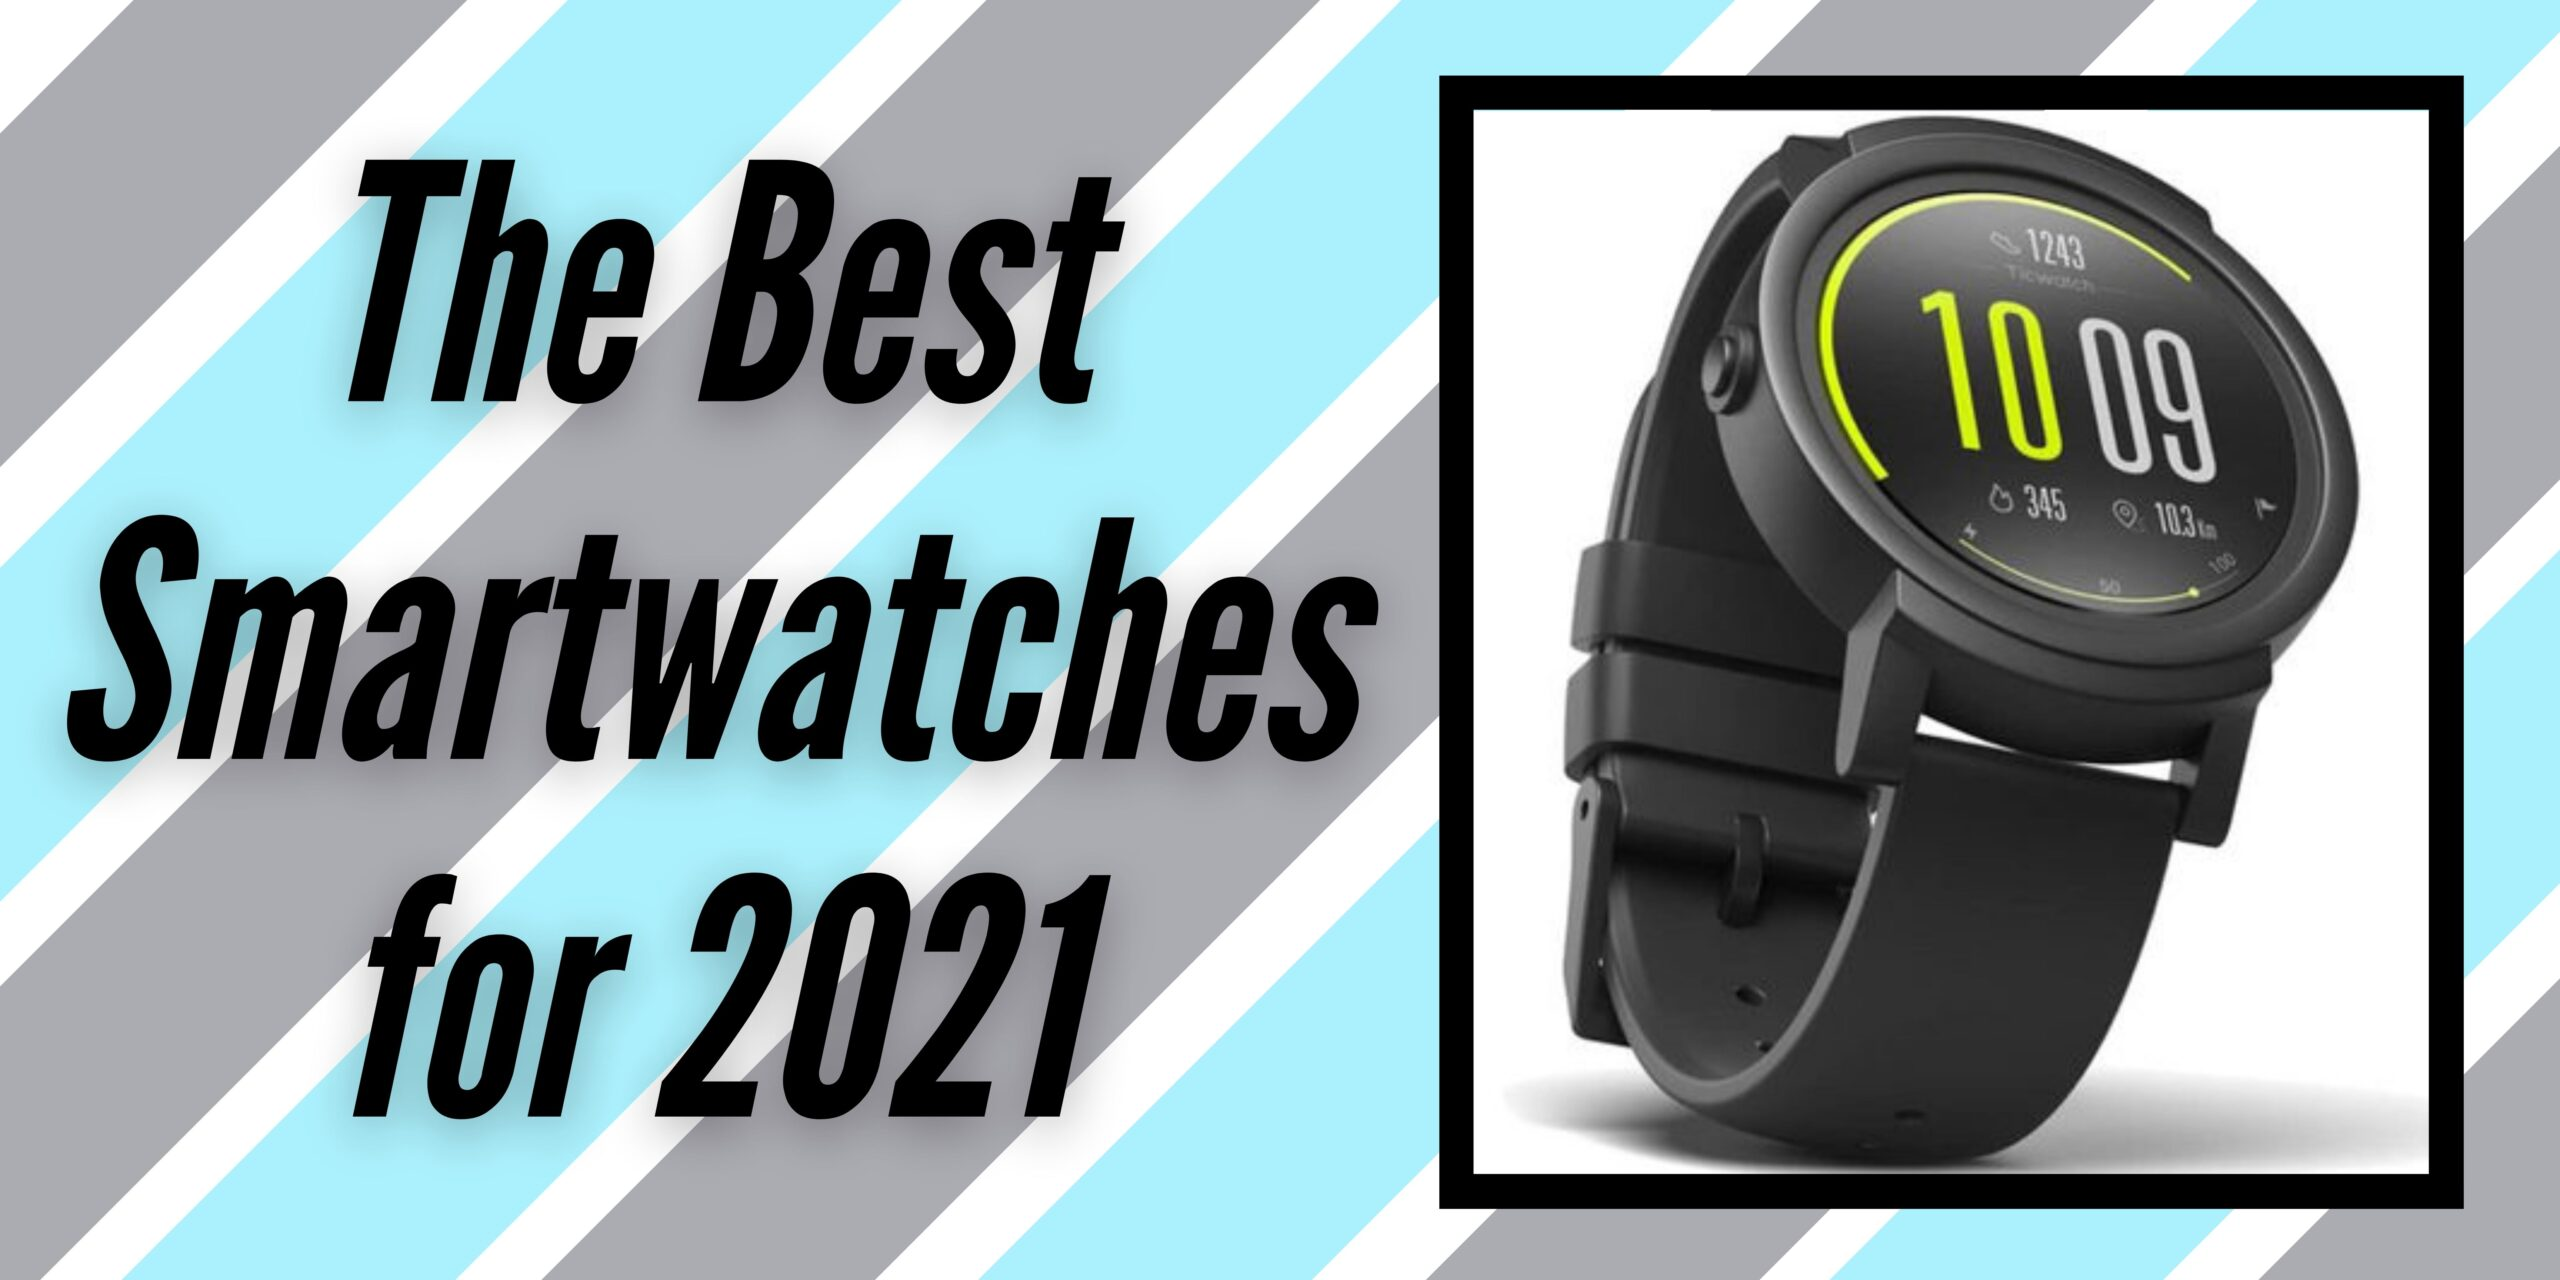 The Best Smartwatches for 2021